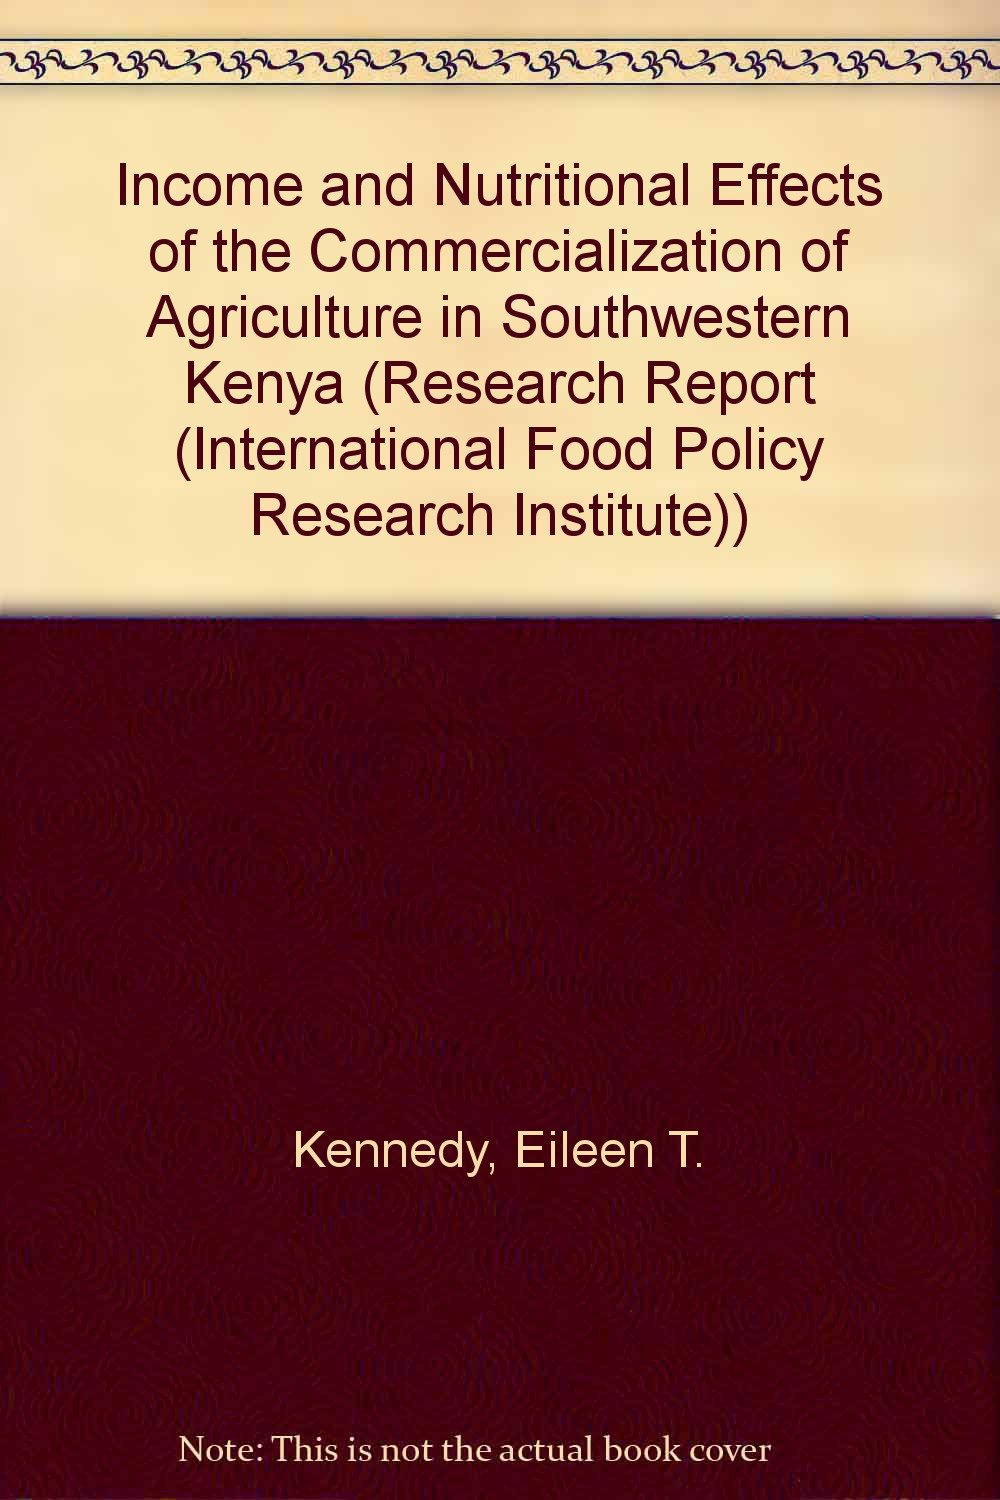 Income and nutritional effects of the commercialization of agriculture in southwestern Kenya [electronic resource]